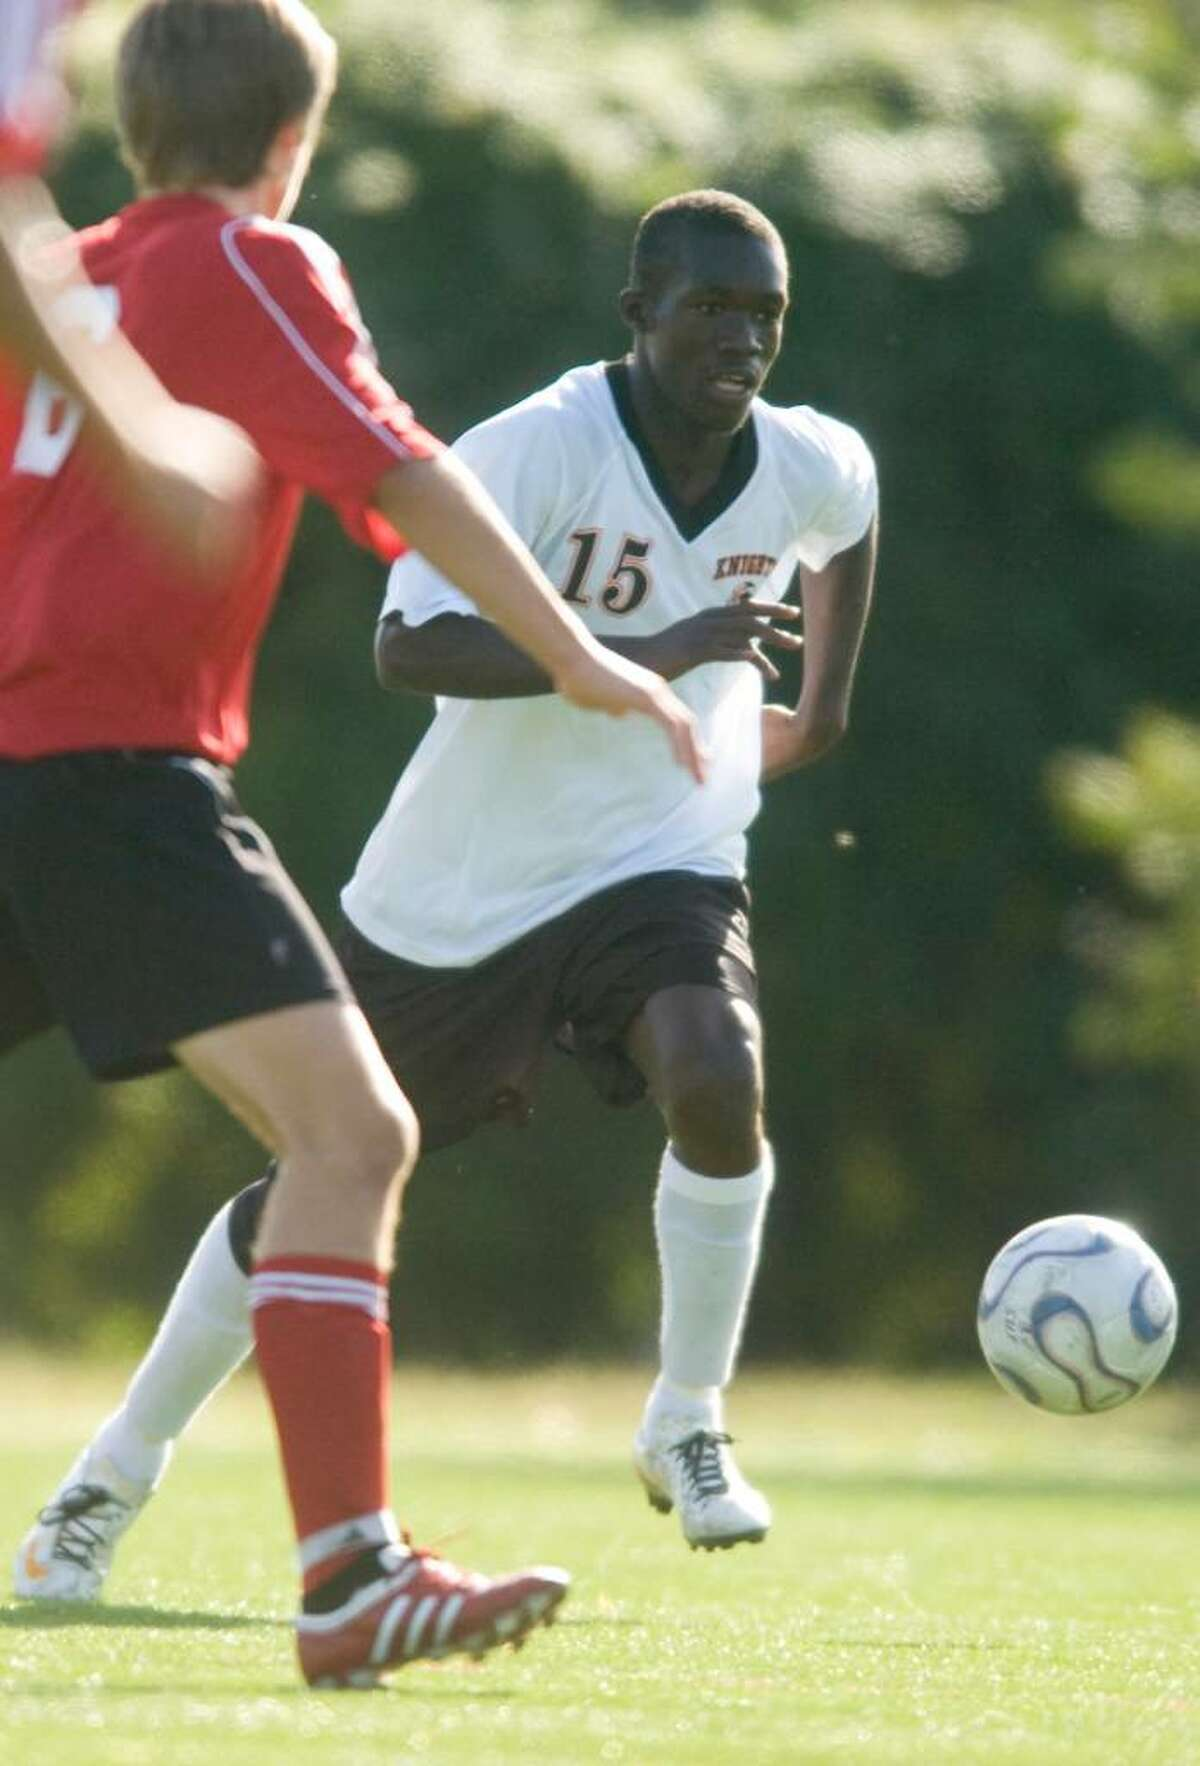 Diego Charles, of Stamford High School, heads downfield during an FCIAC boys soccer match against Greenwich High School at Stamford High School in Stamford, Conn. on Monday, Sept. 21, 2009